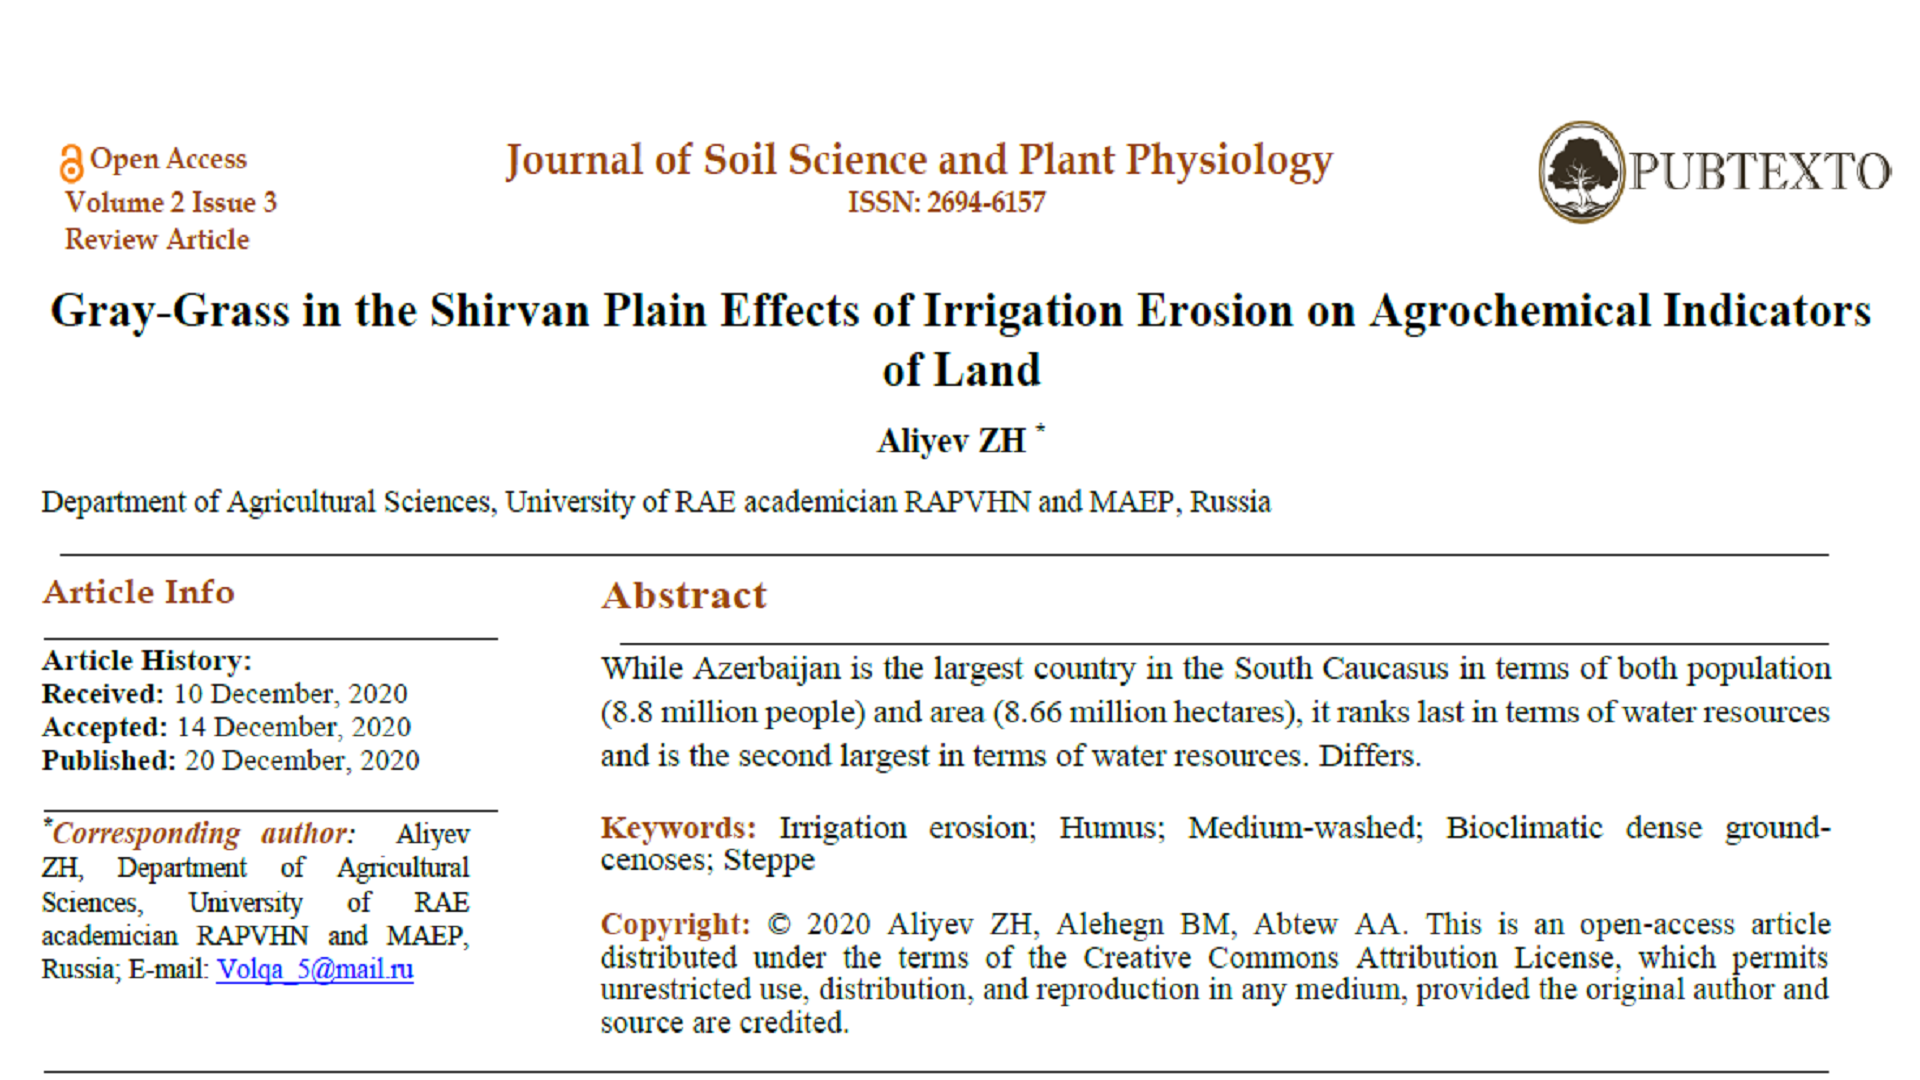 Gray-Grass in the Shirvan Plain Effects of Irrigation Erosion on Agrochemical Indicators of Land